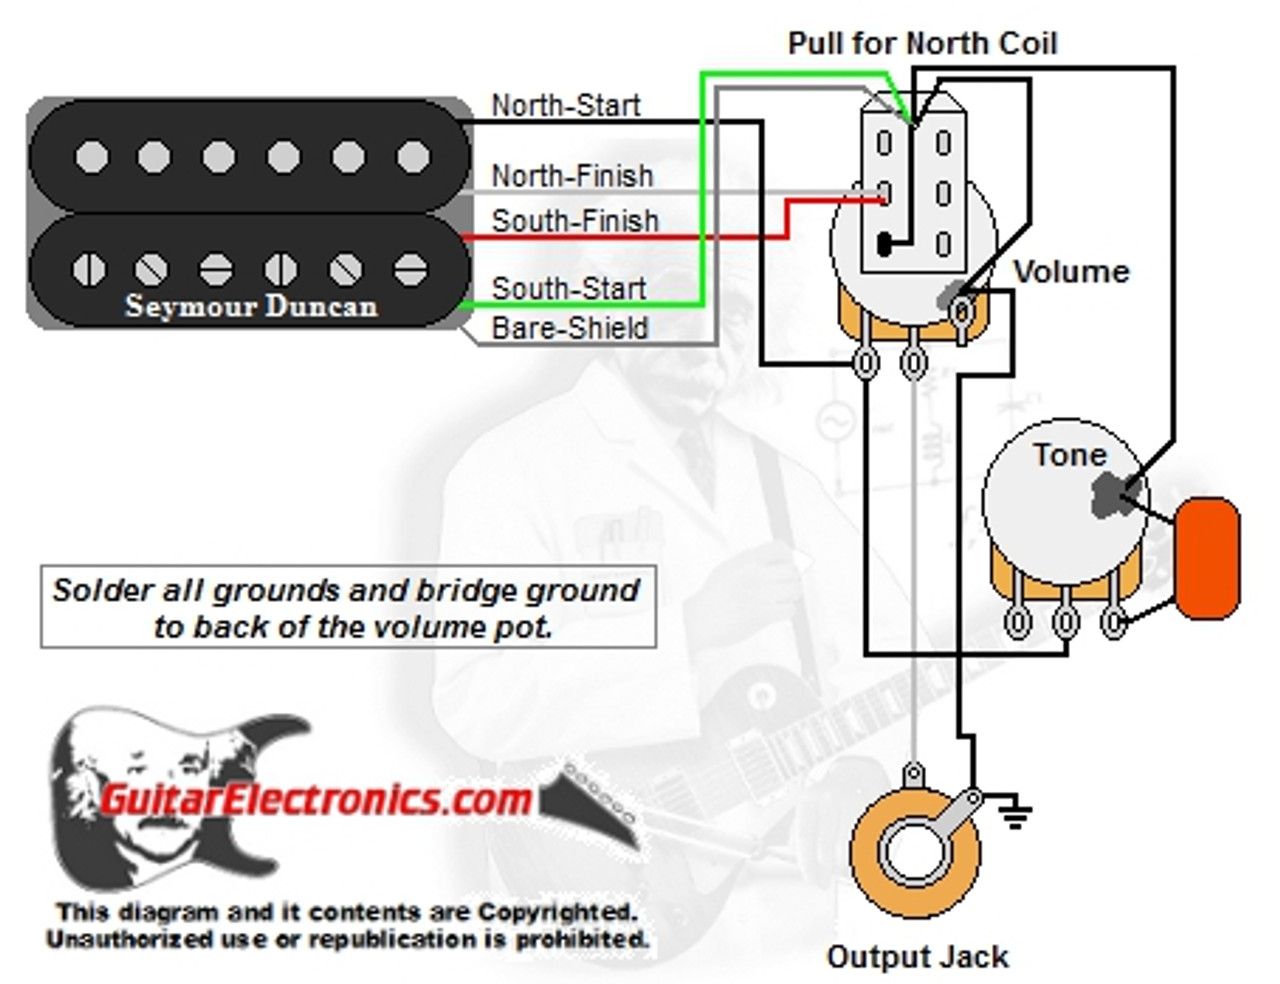 hight resolution of 1 humbucker 1 volume 1tone pull for north single coil wiring diagram 1 humbucker 1 volume 1 tone pull for north single coil